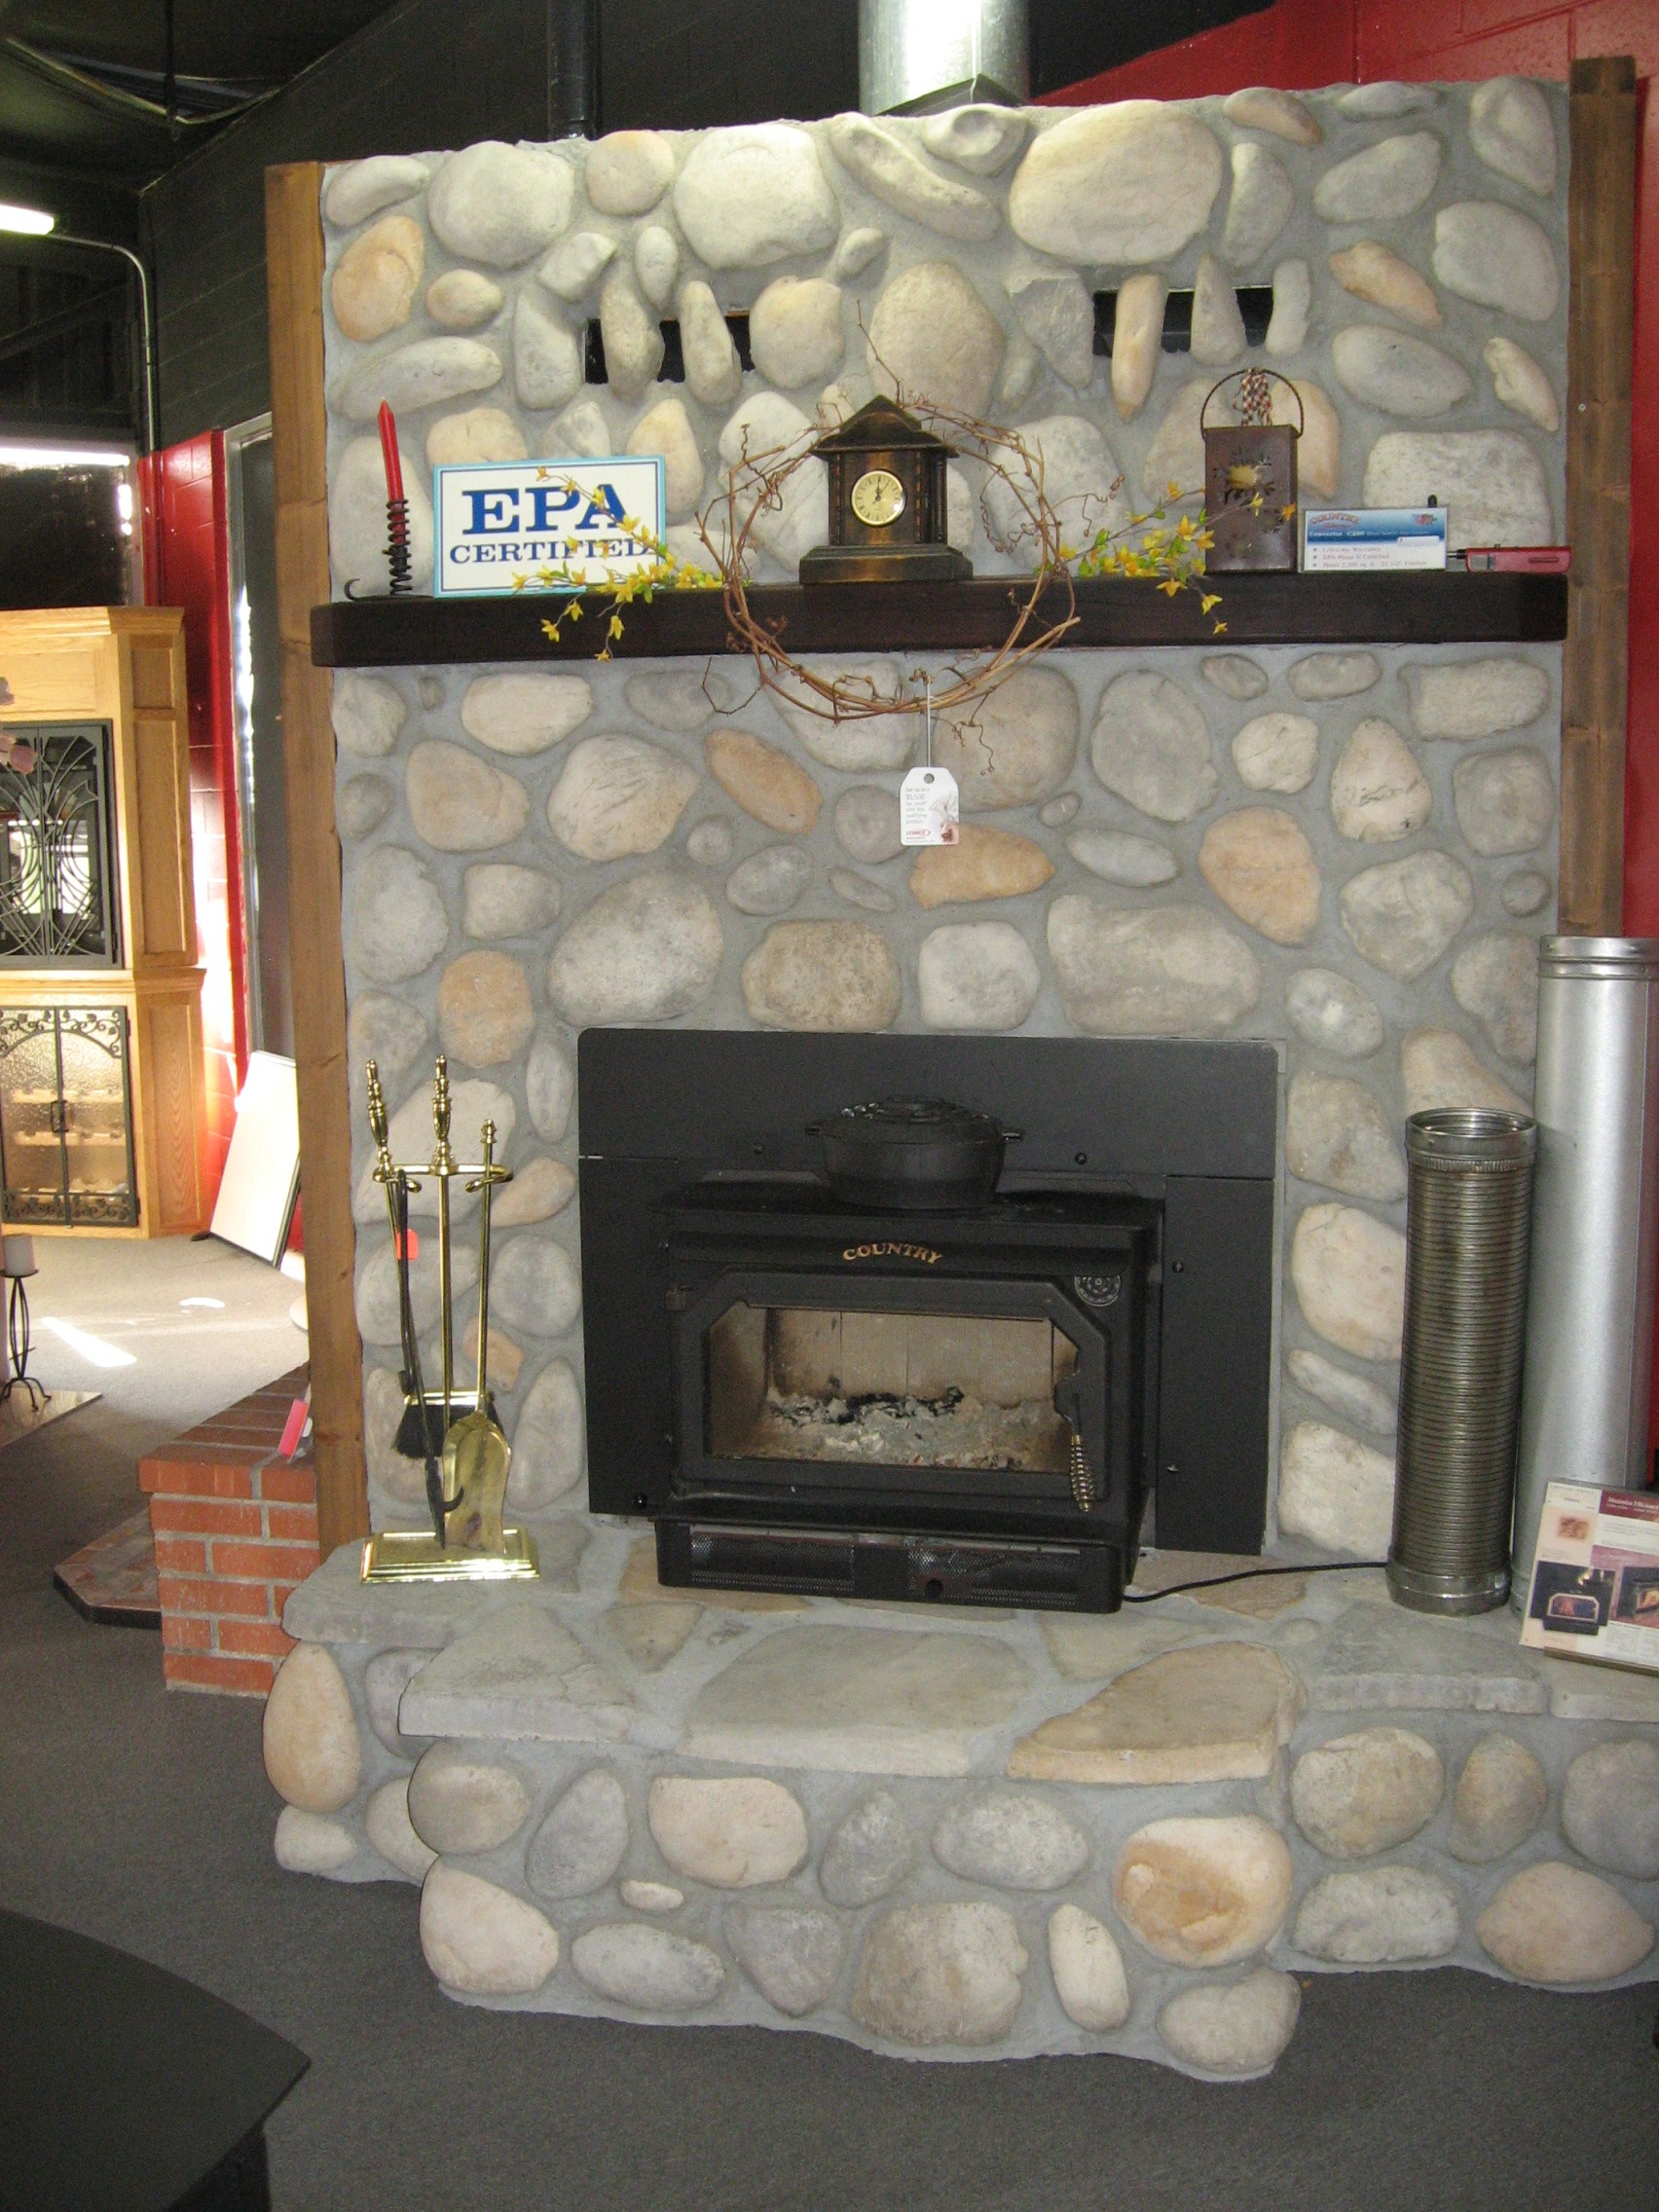 stove u0026 spa center atascadero ca 93422 yp com